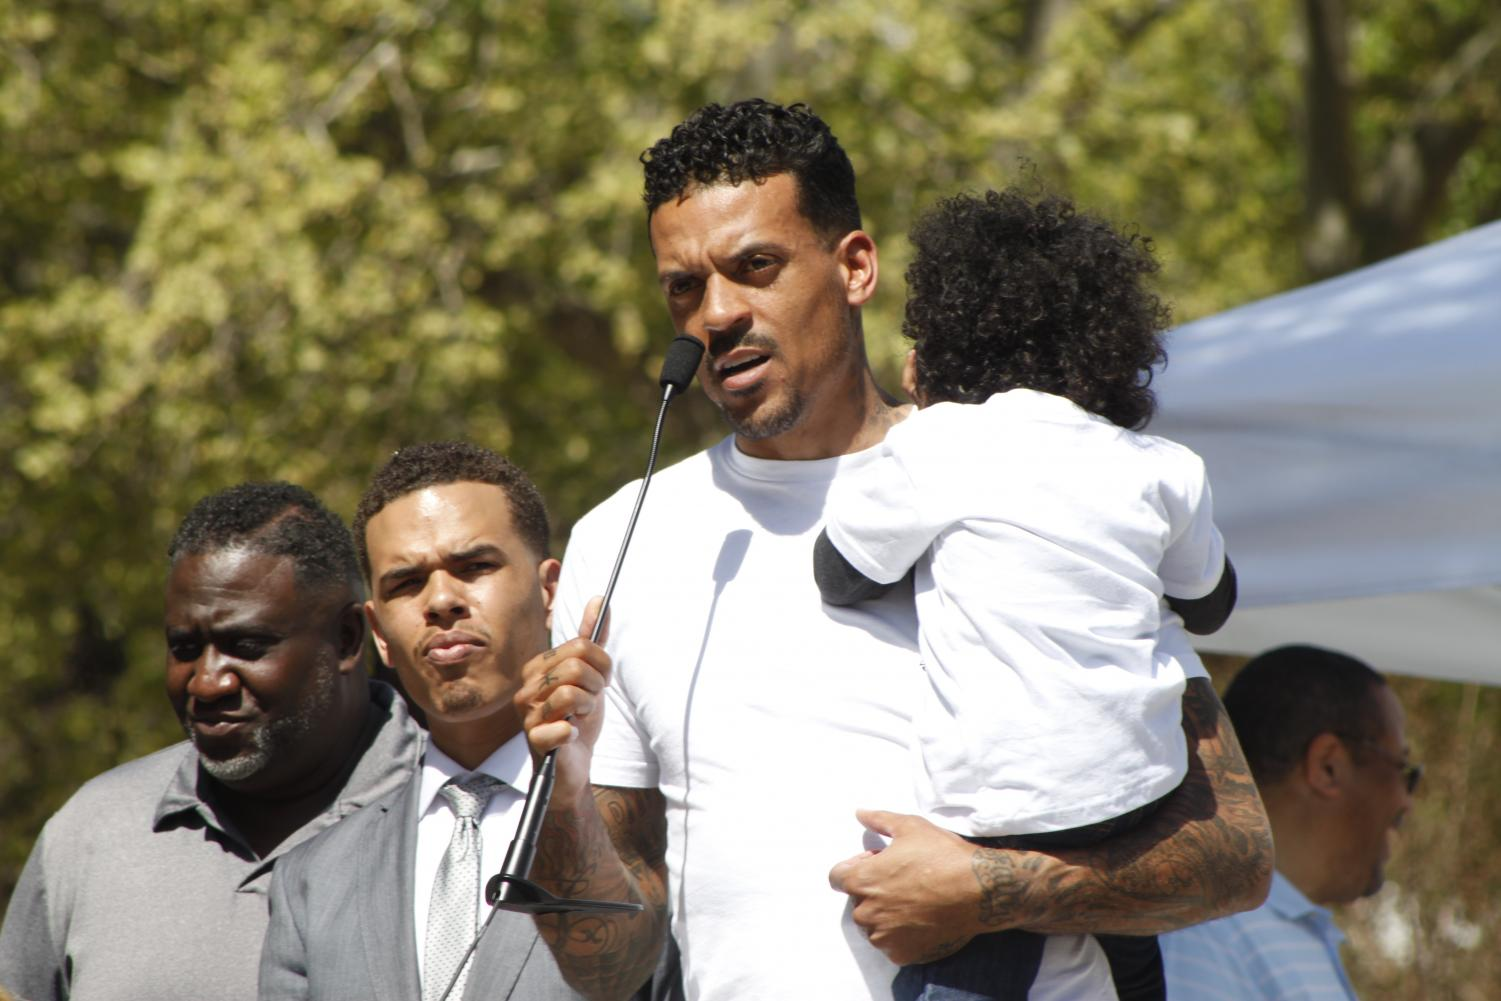 Former Sacramento Kings player Matt Barnes holds one of the children of Stephon Clark, who was recently shot and killed by police, during the March and Rally for Action on March 31, 2018. Barnes created the event to spread awareness of the shooting and preach change.